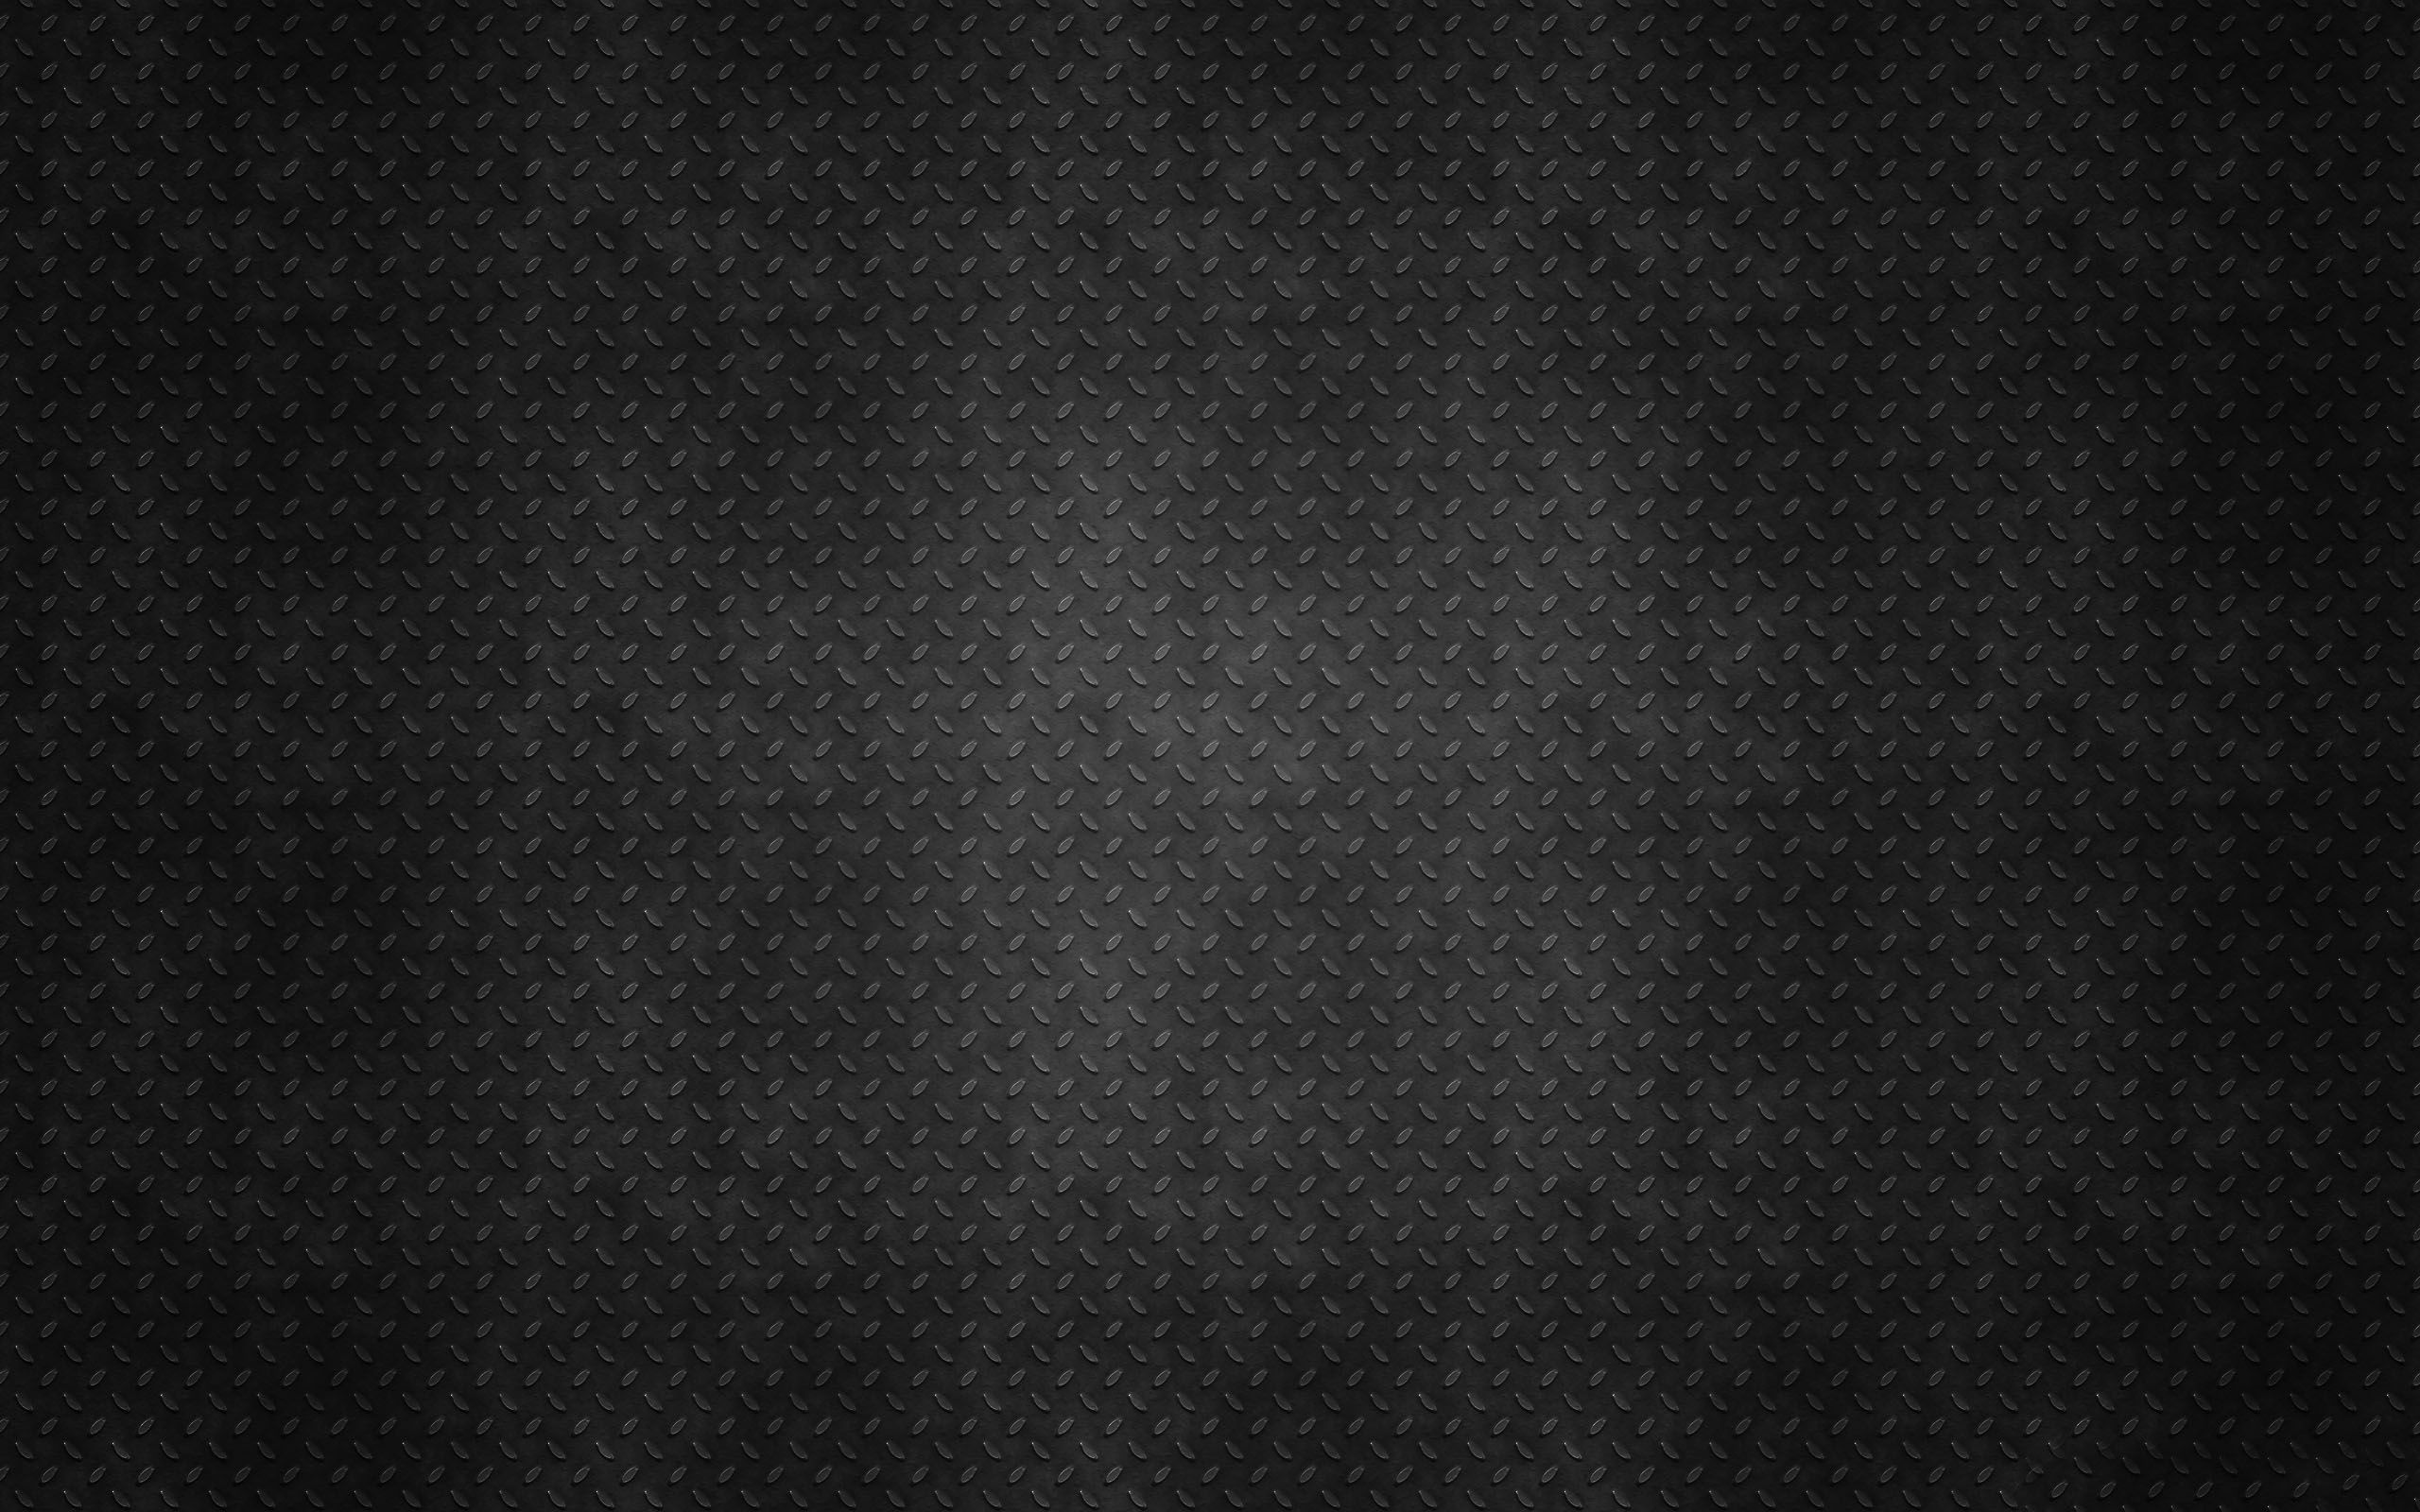 black-hd-background-background-wallpapers-abstract-photo-cool-black ...